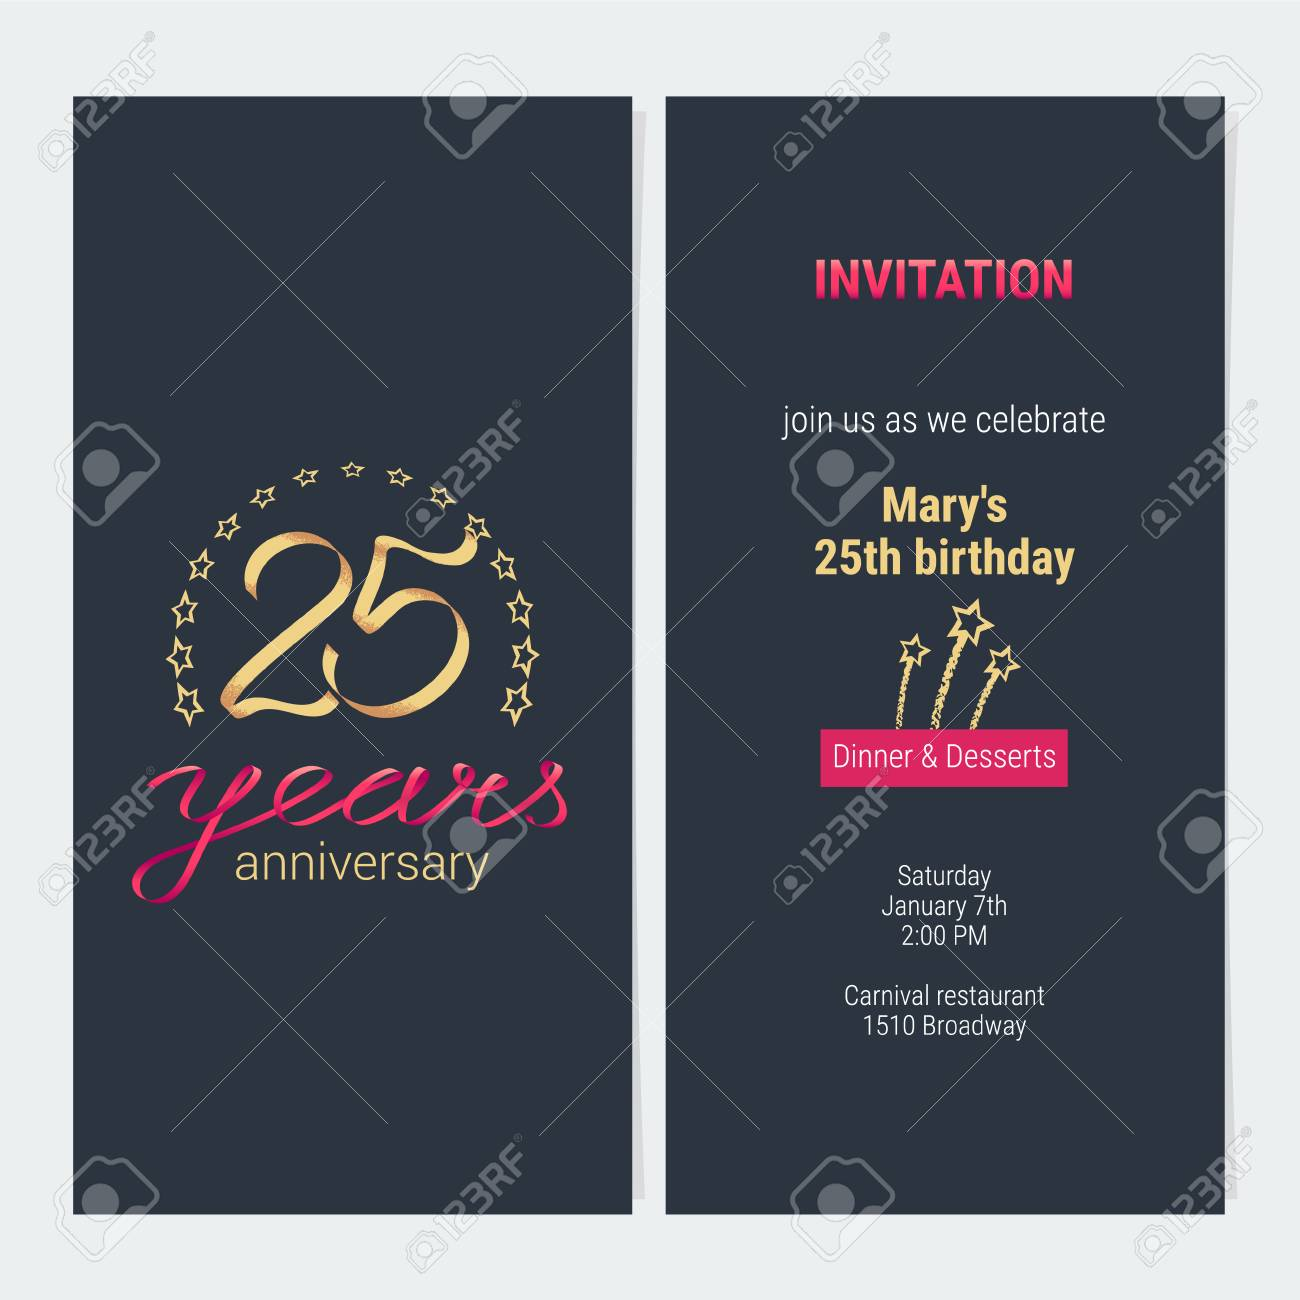 25 years anniversary invitation to celebration vector illustration 25 years anniversary invitation to celebration vector illustration graphic design element with elegant background for stopboris Gallery